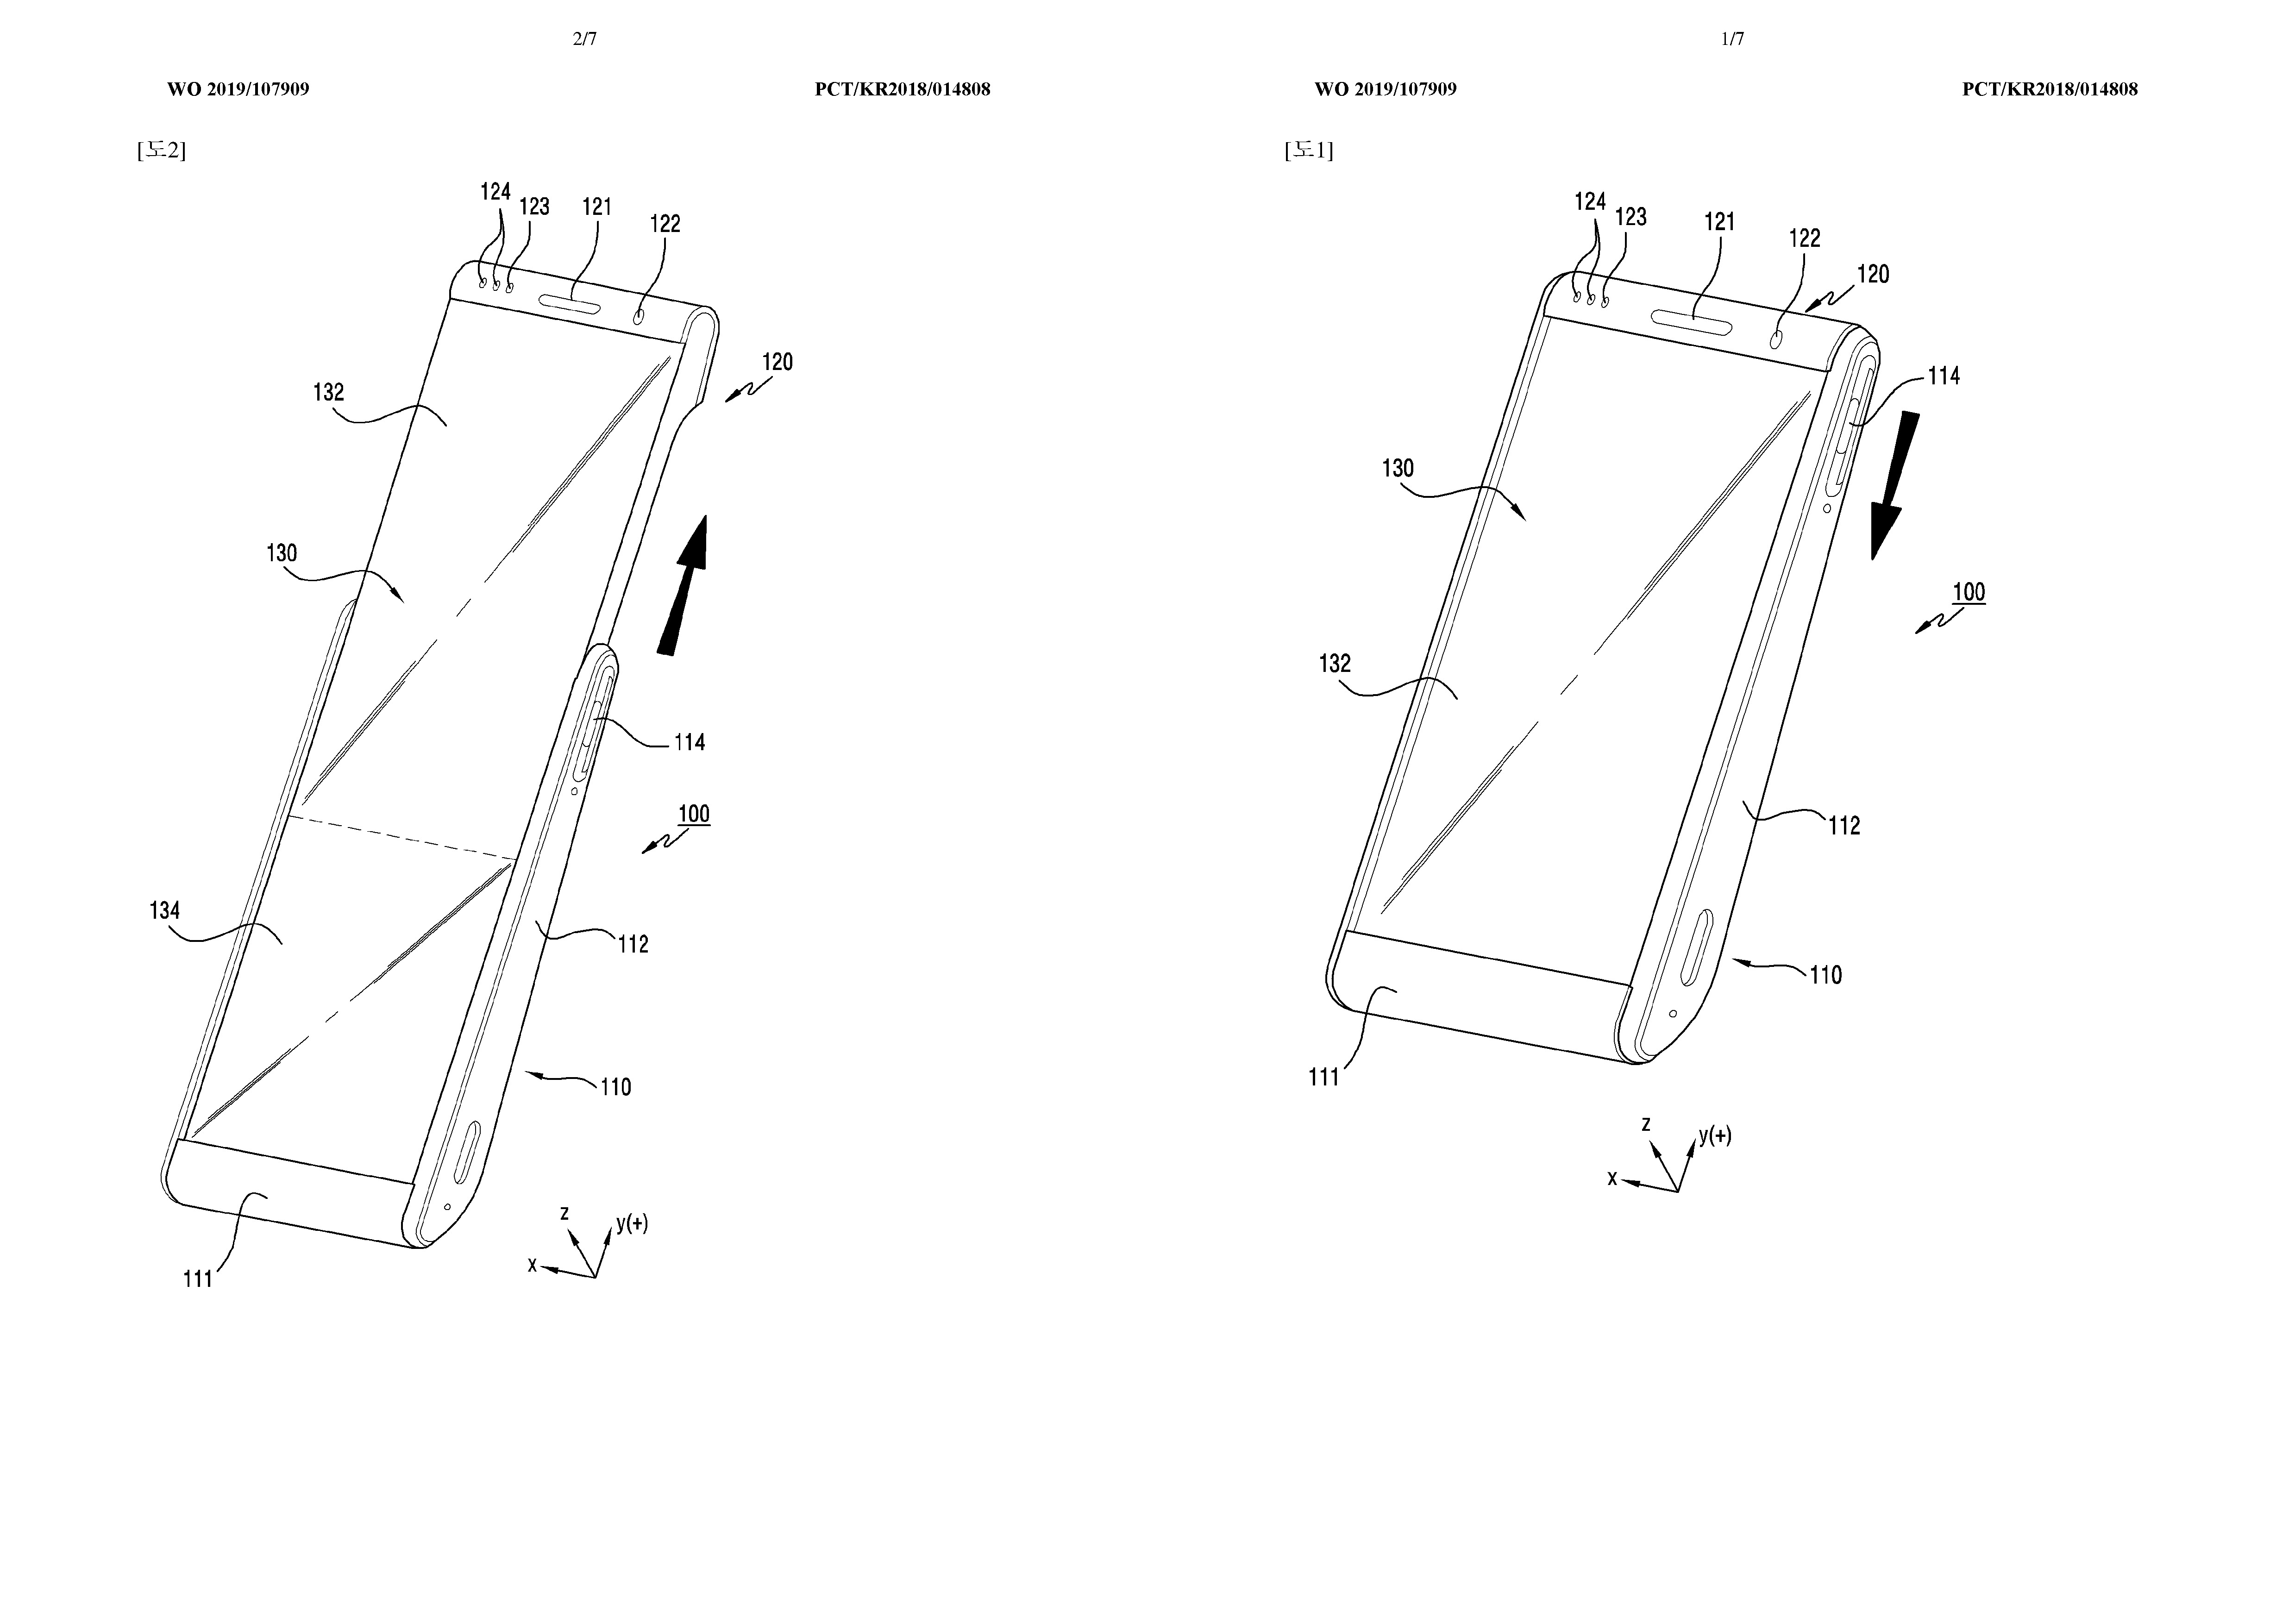 Samsung patents a smartphone with rollable display having expandable display area